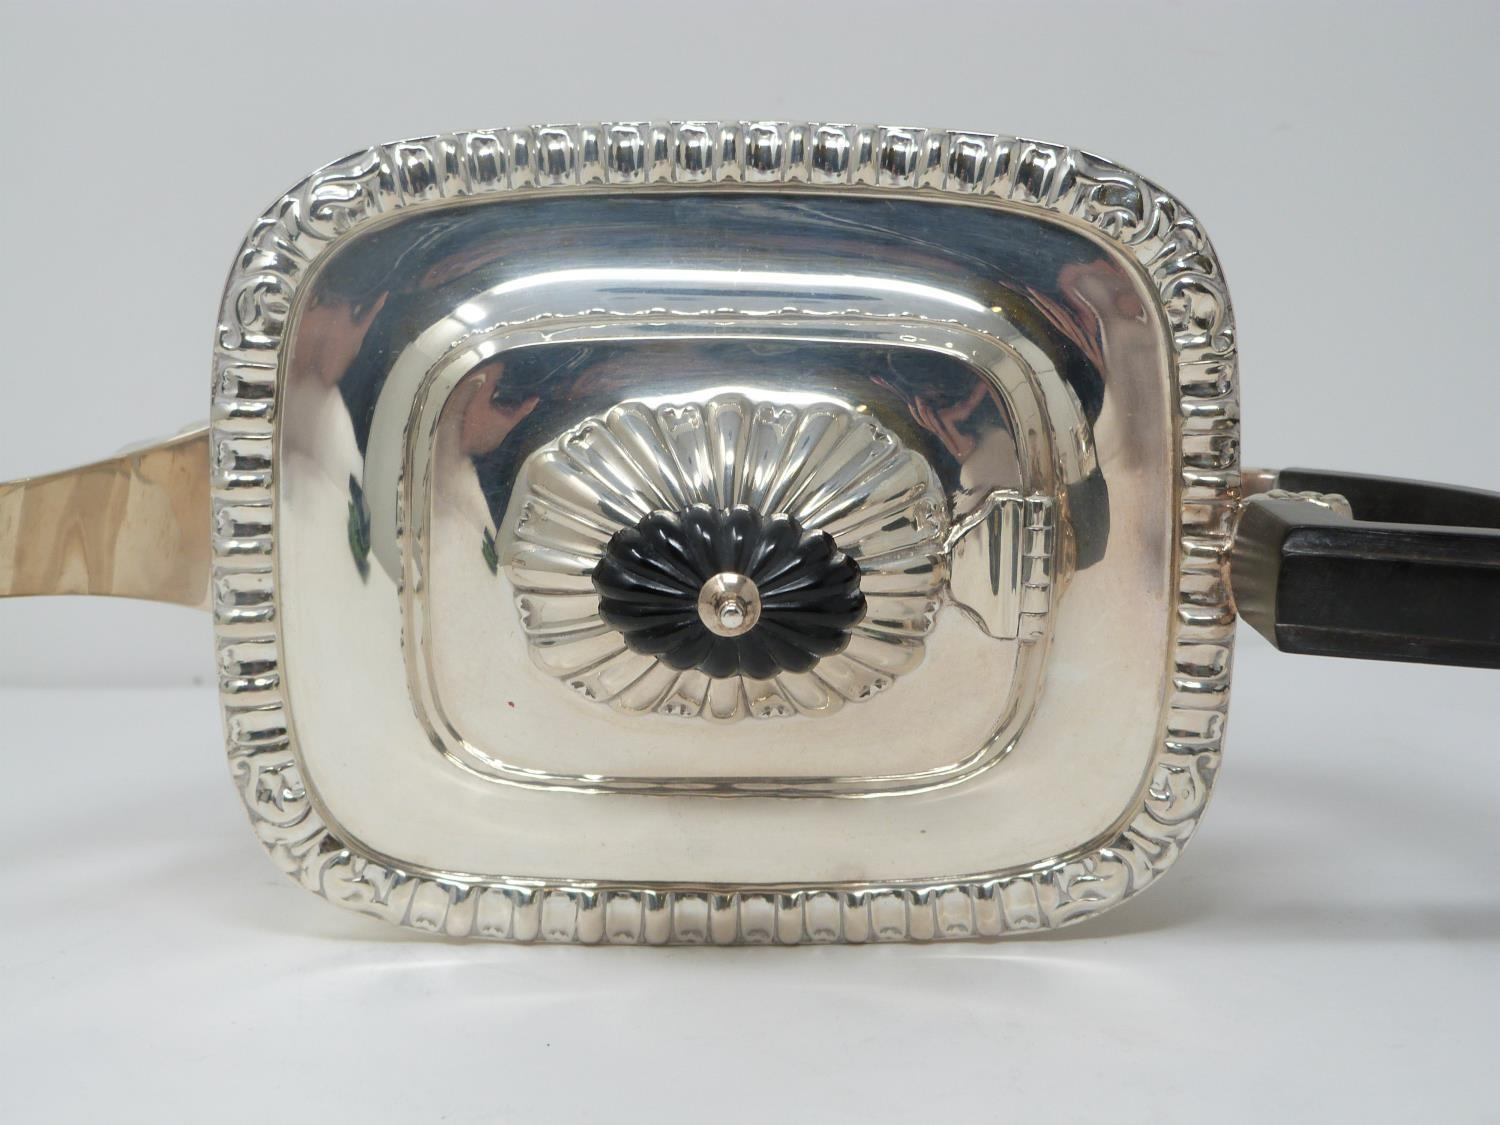 An Elkington and Co. silver three piece tea service, includes a teapot, sugar bowl and milk jug. - Image 6 of 12